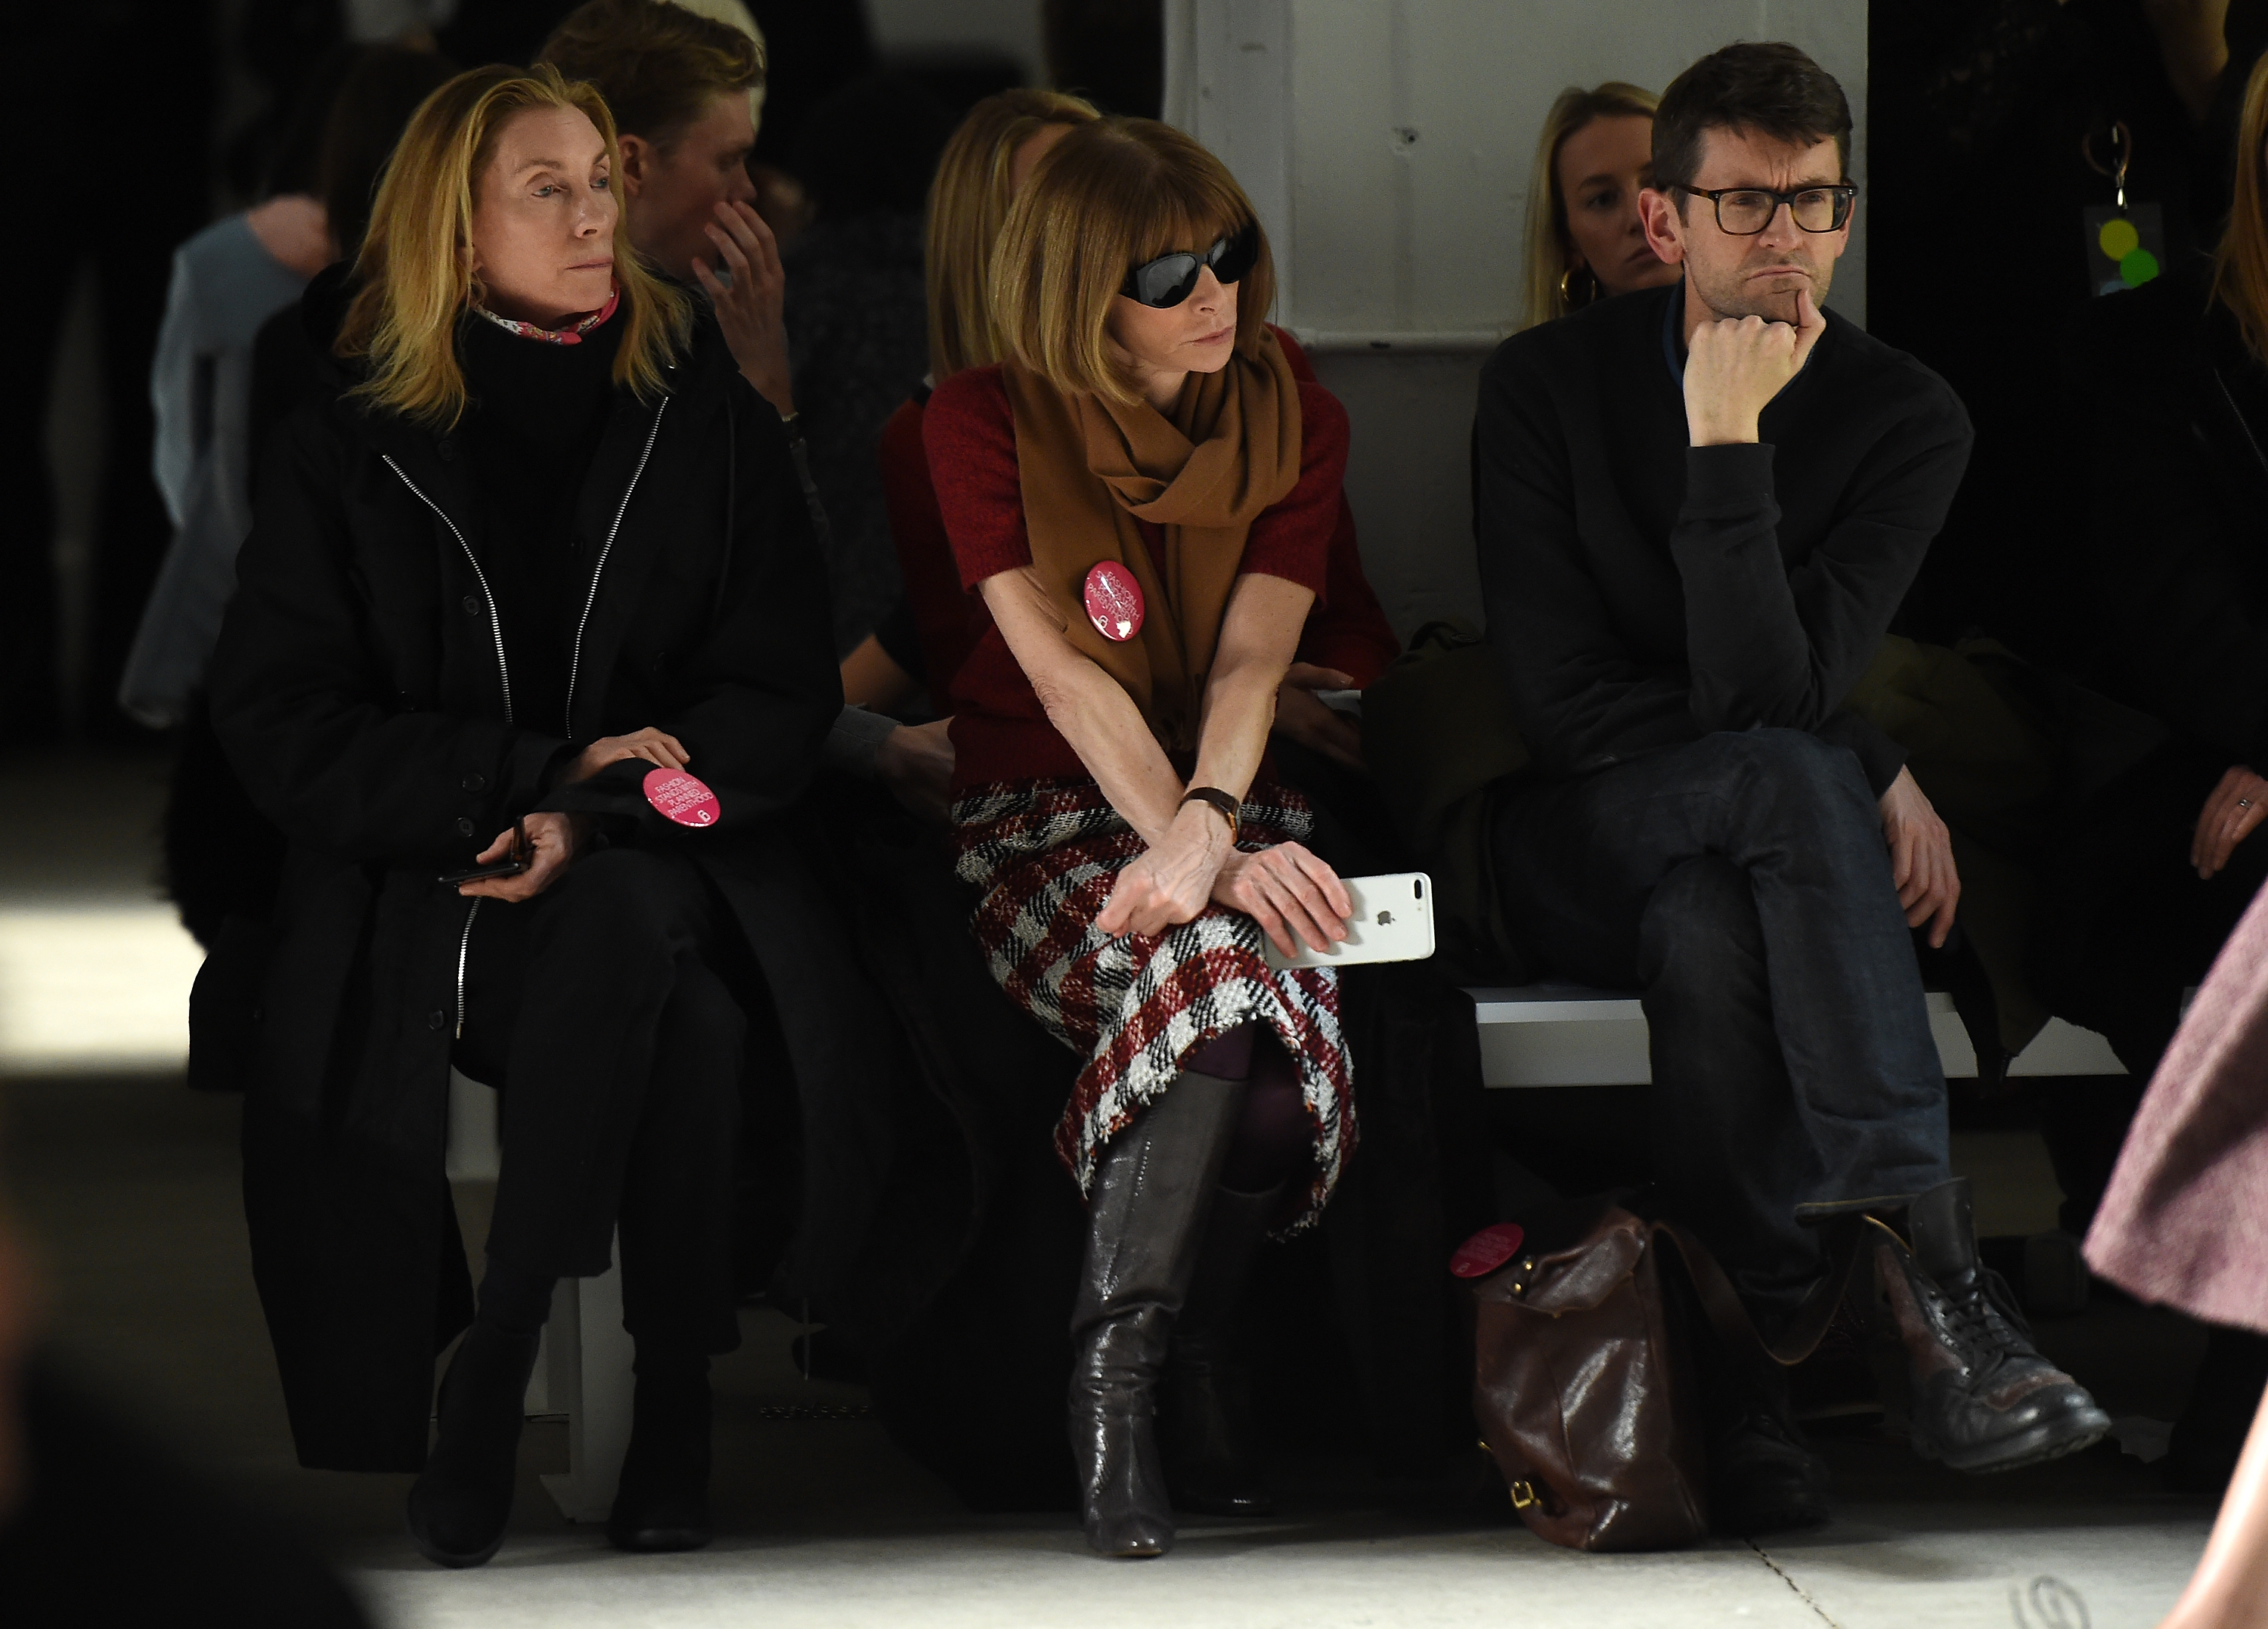 Anna Wintour (C) attends the Brock Collection fashion show during, New York Fashion Week: The Shows at Gallery 3, Skylight Clarkson Sq on February 9, 2017 in New York City.